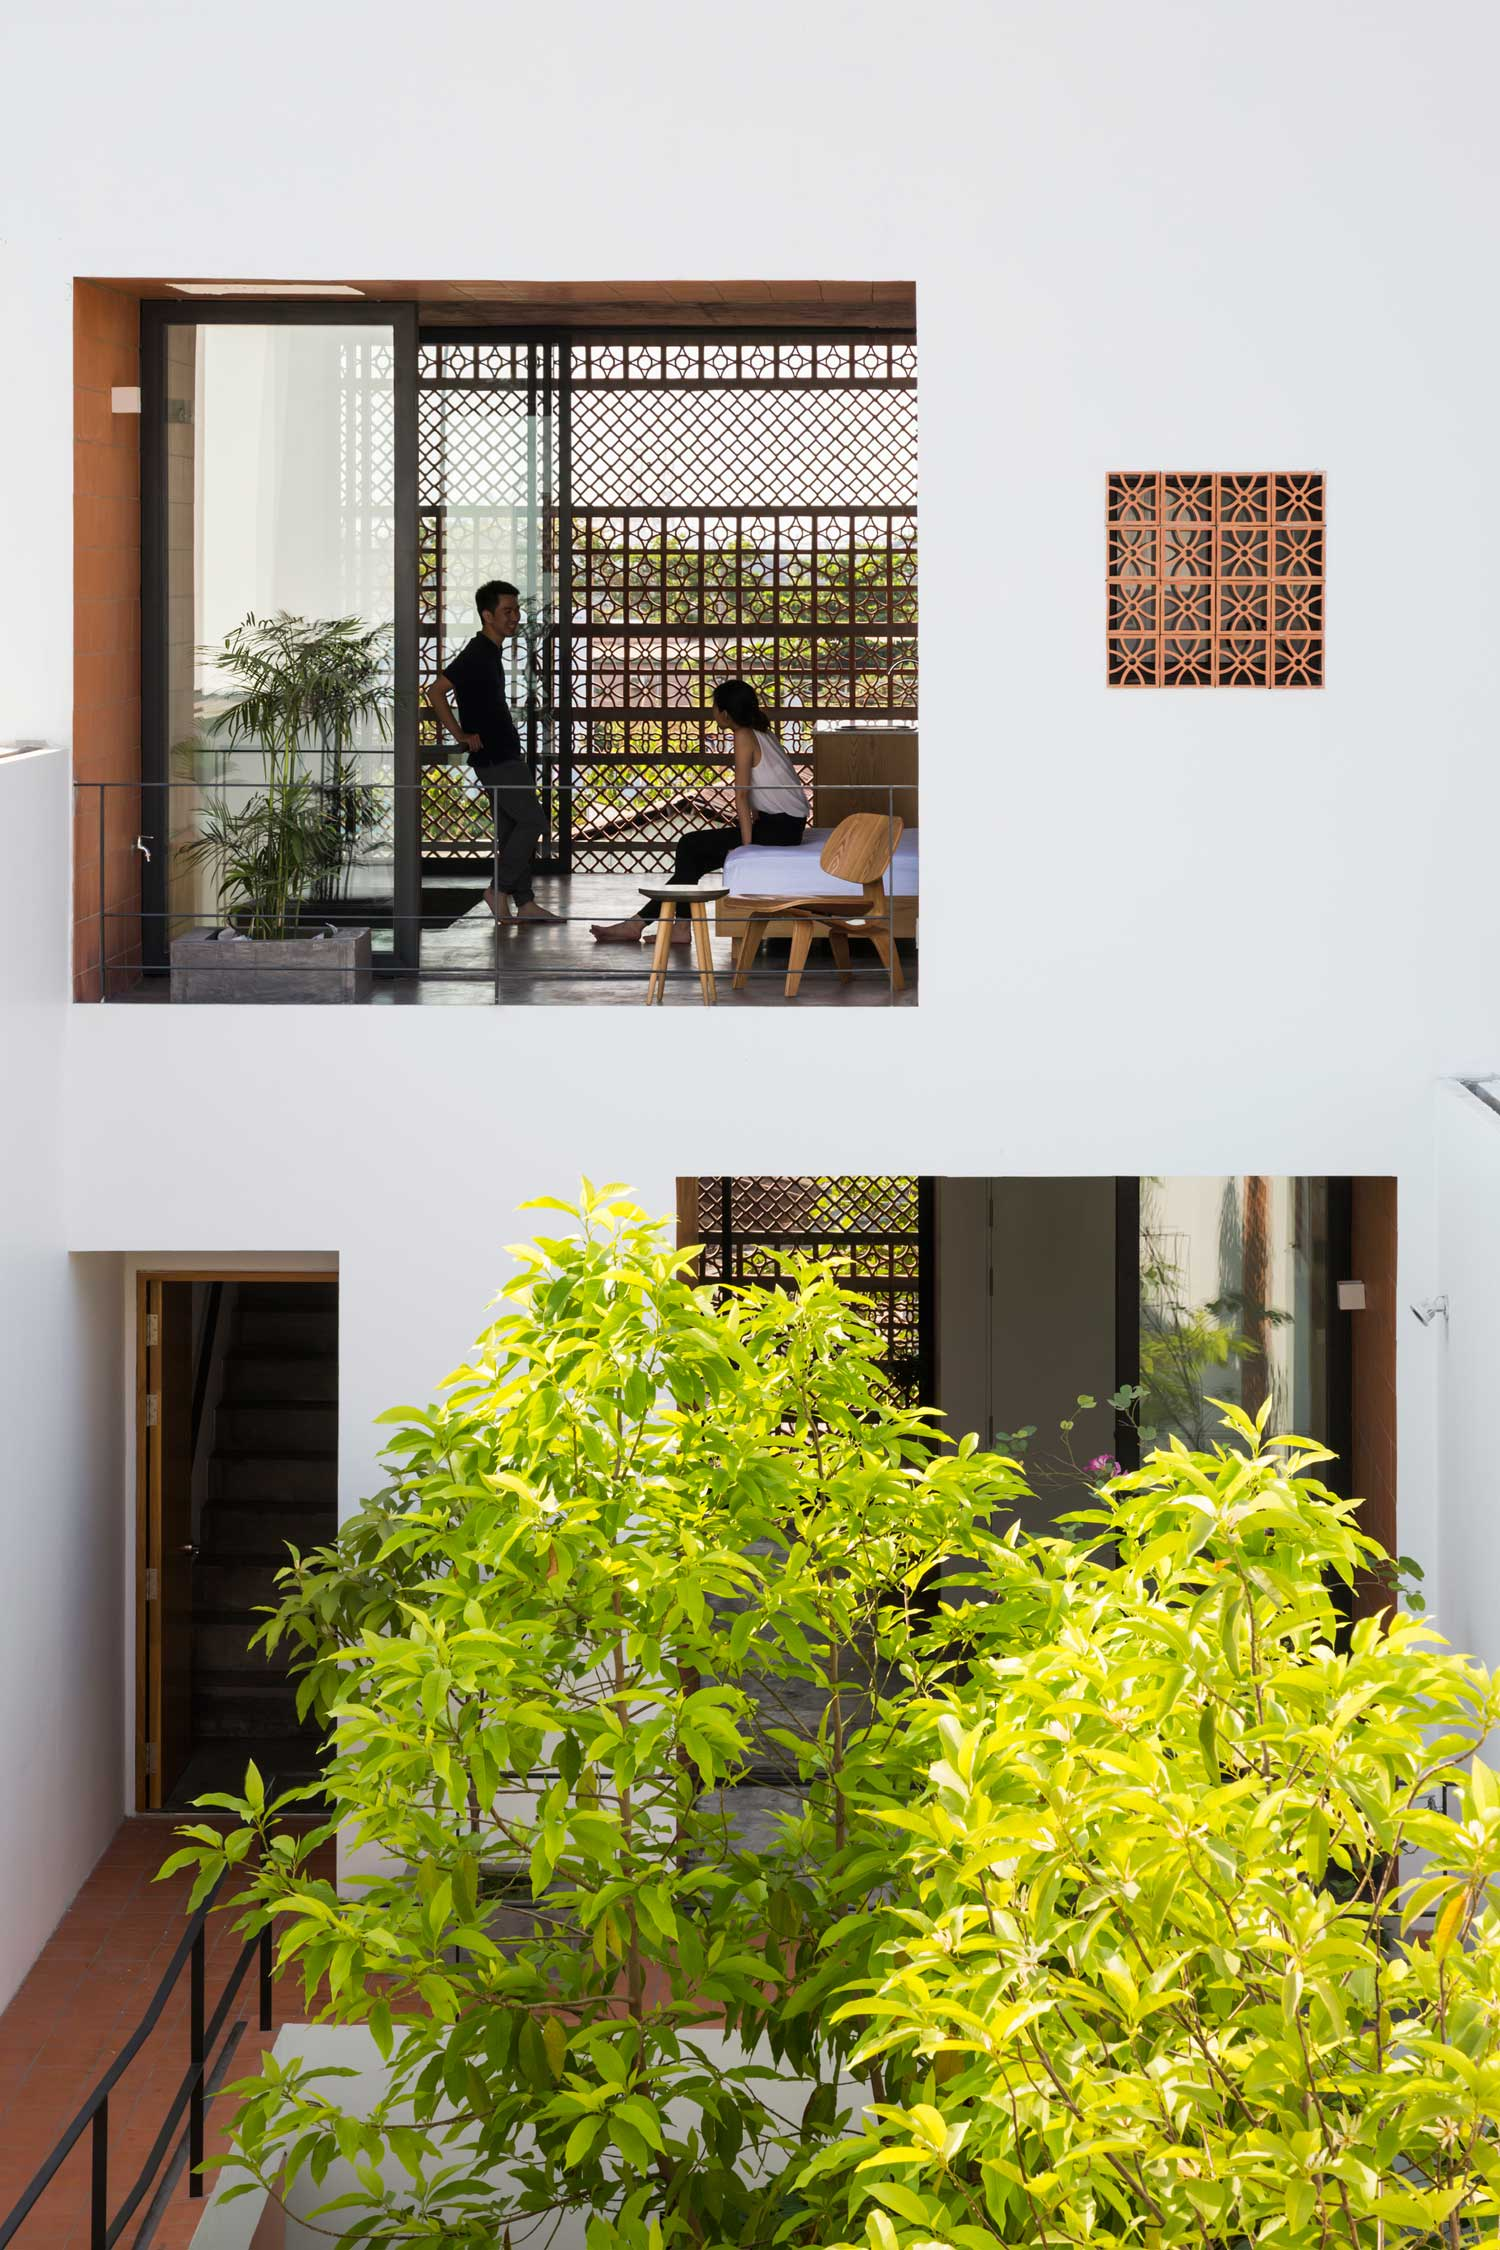 Apartment in Binh Thanh, Ho Chi Minh, Vietnam by Sanuki Daisuke Architects | Yellowtrace